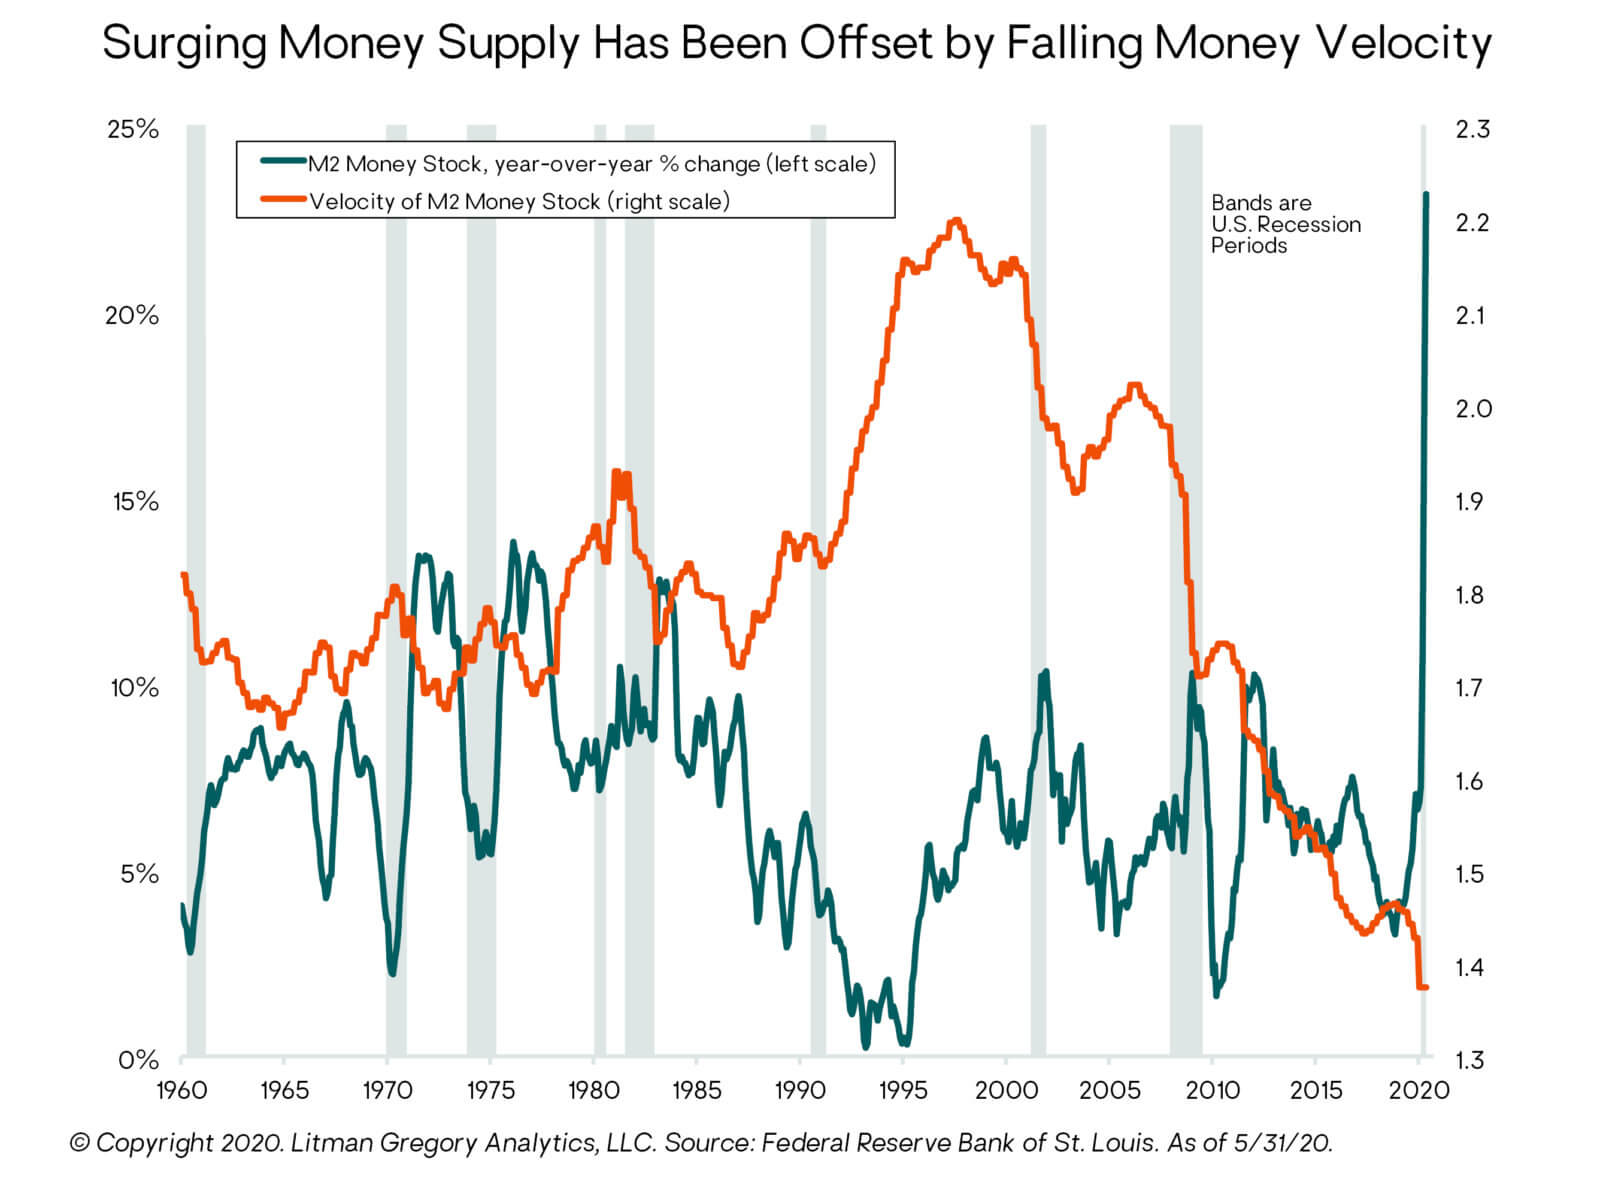 Surging Money Supply Has Been Offset